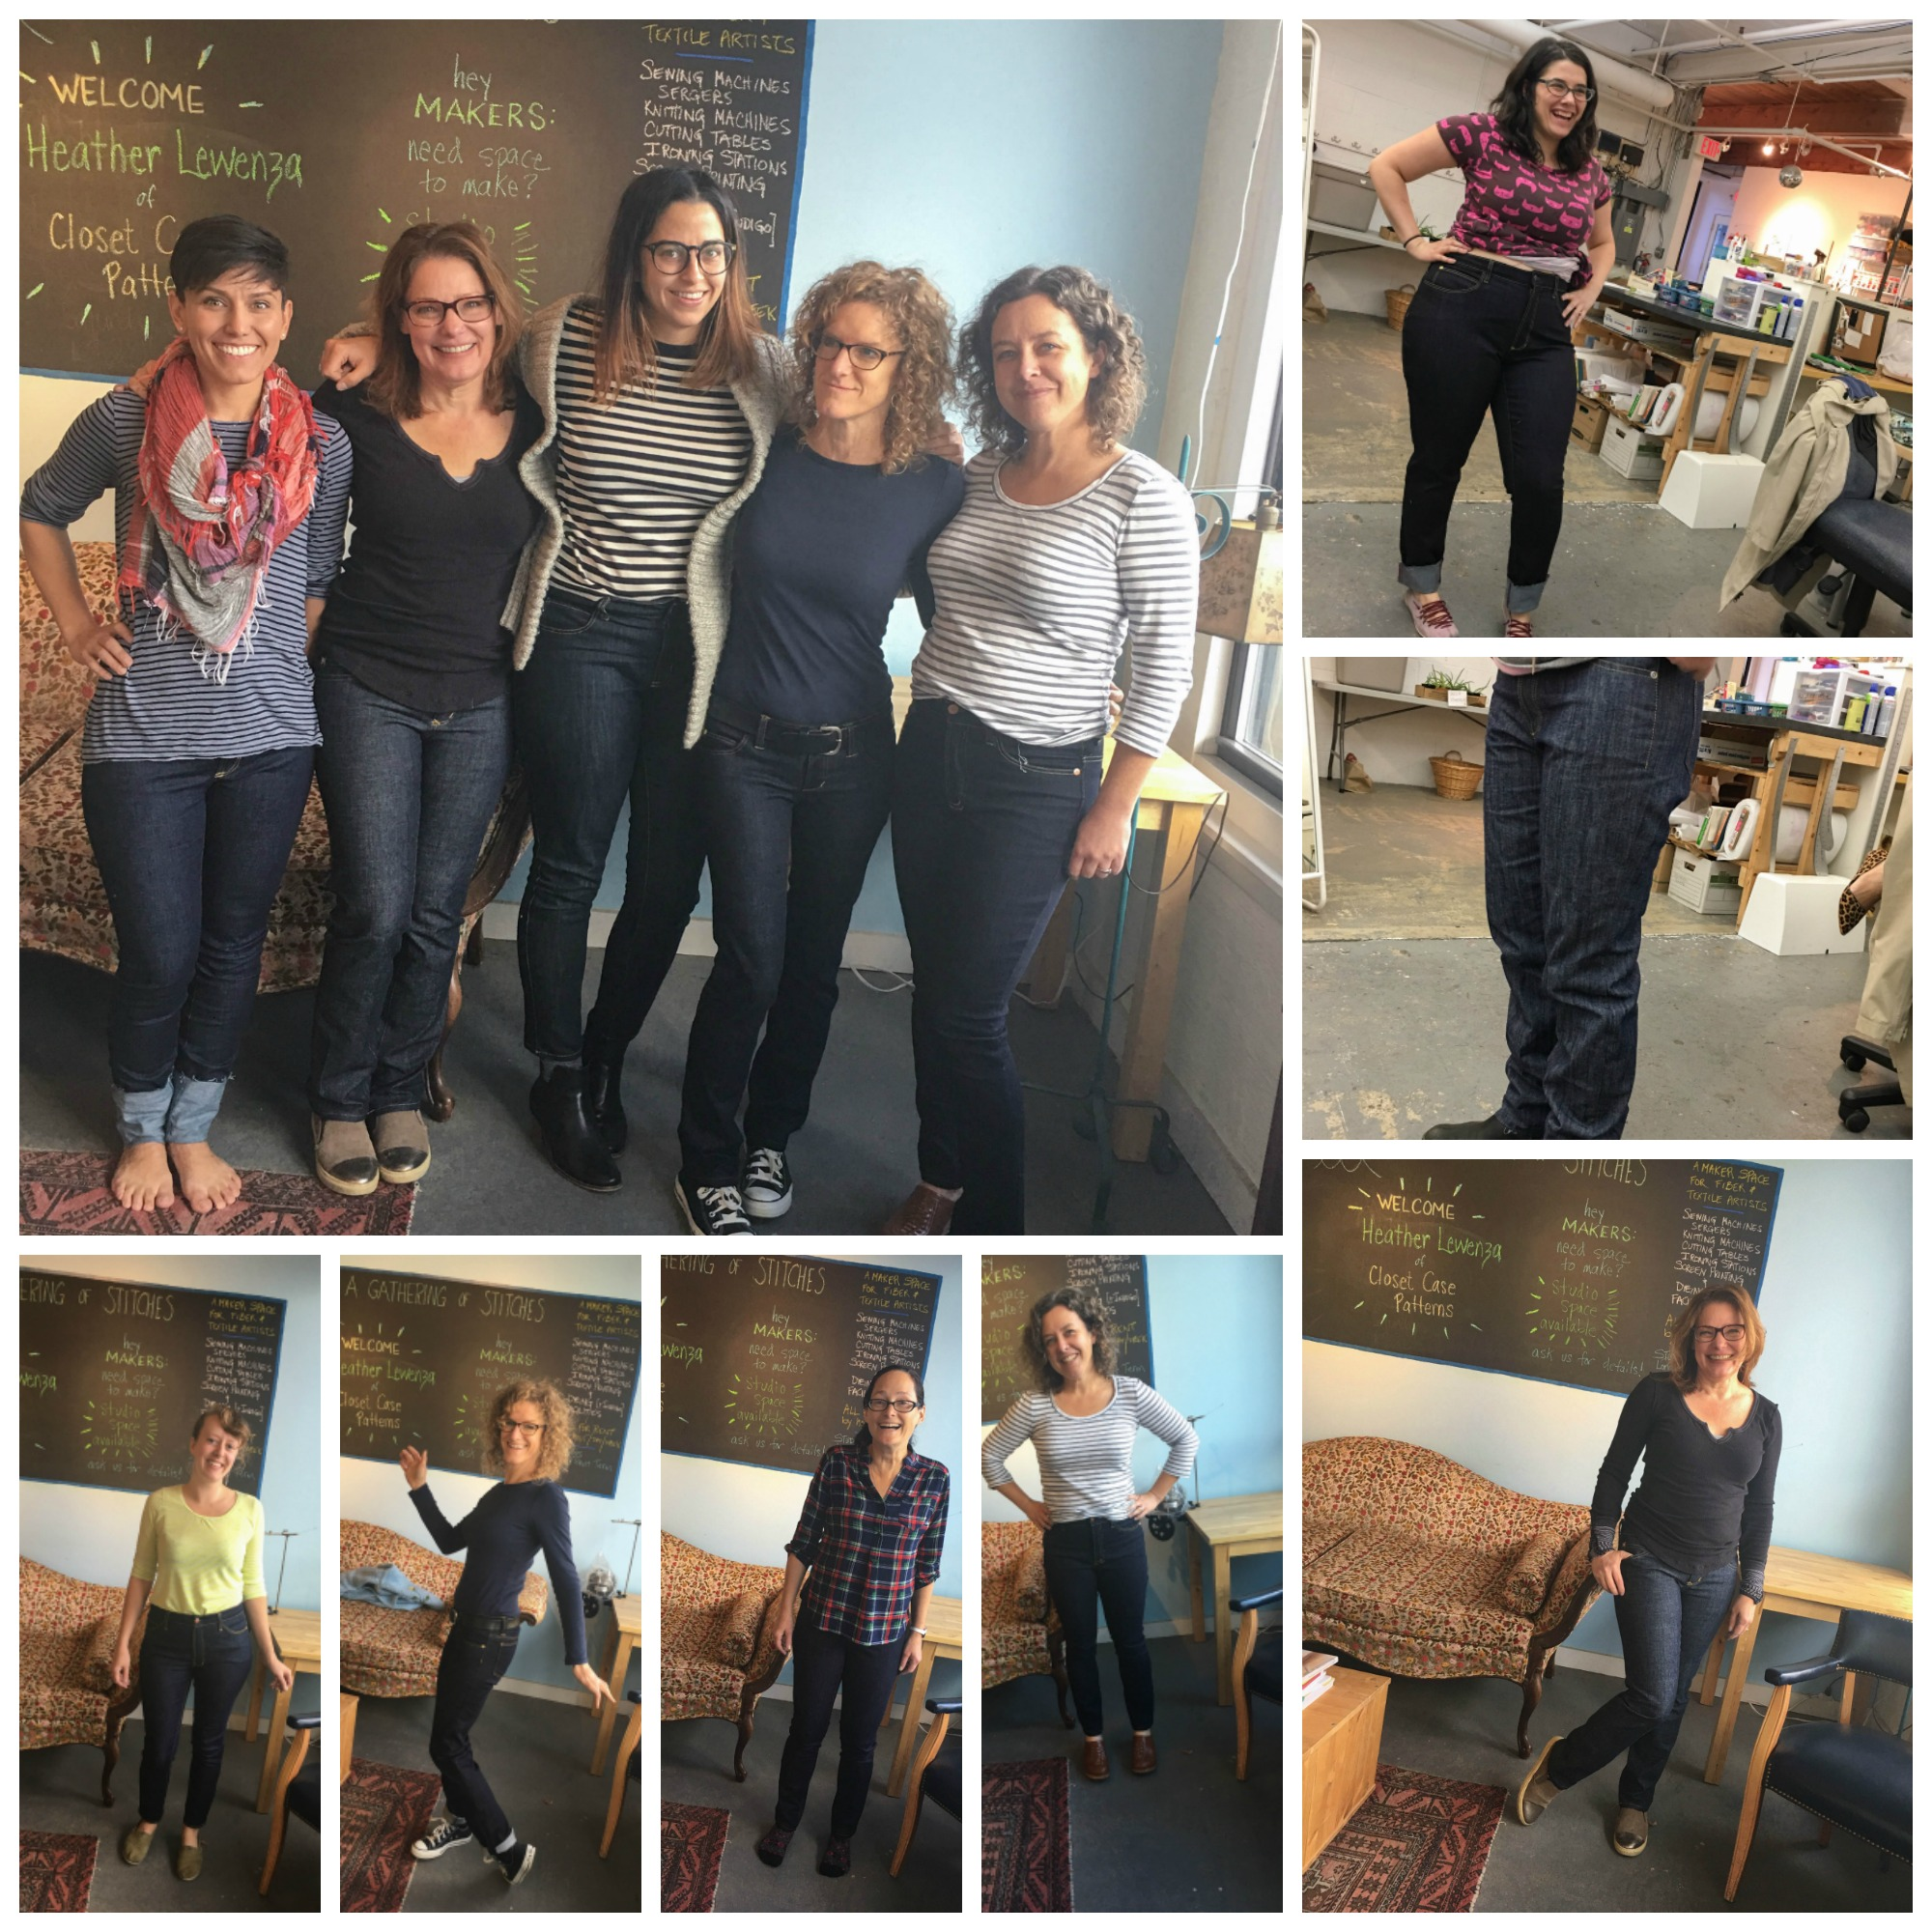 The Jeans workshop with Heather Lewenza